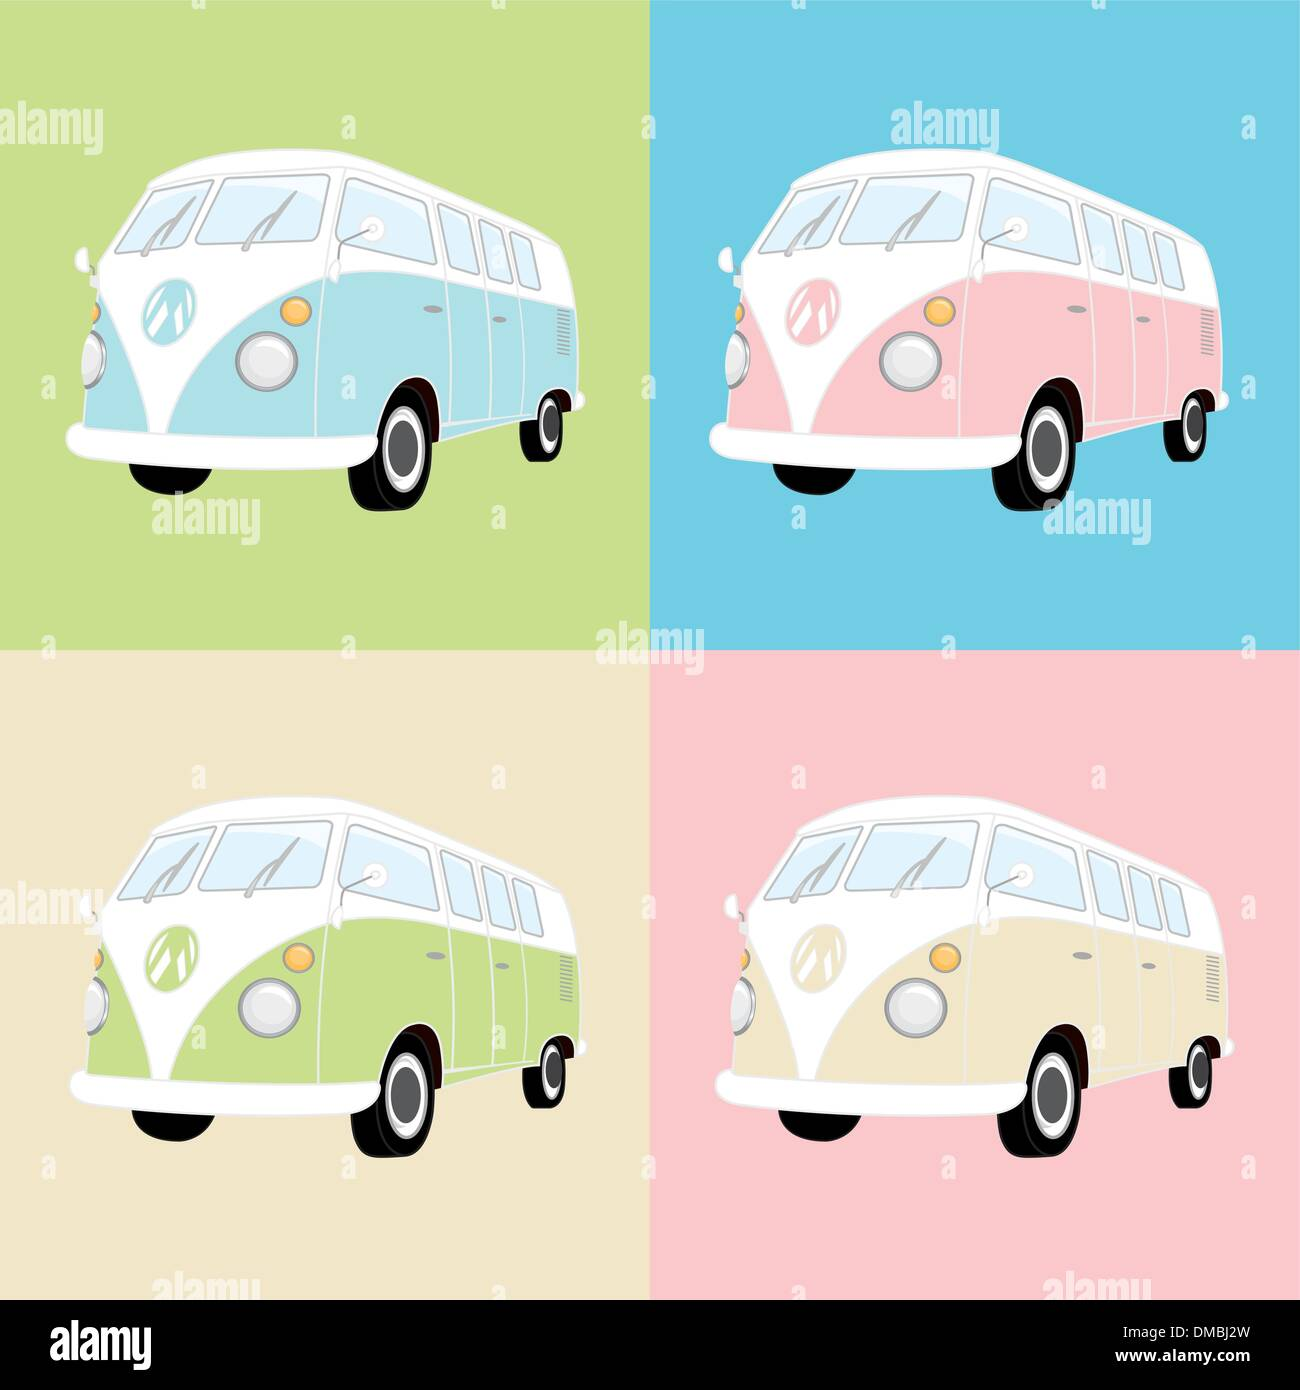 Camper Van - Stock Vector